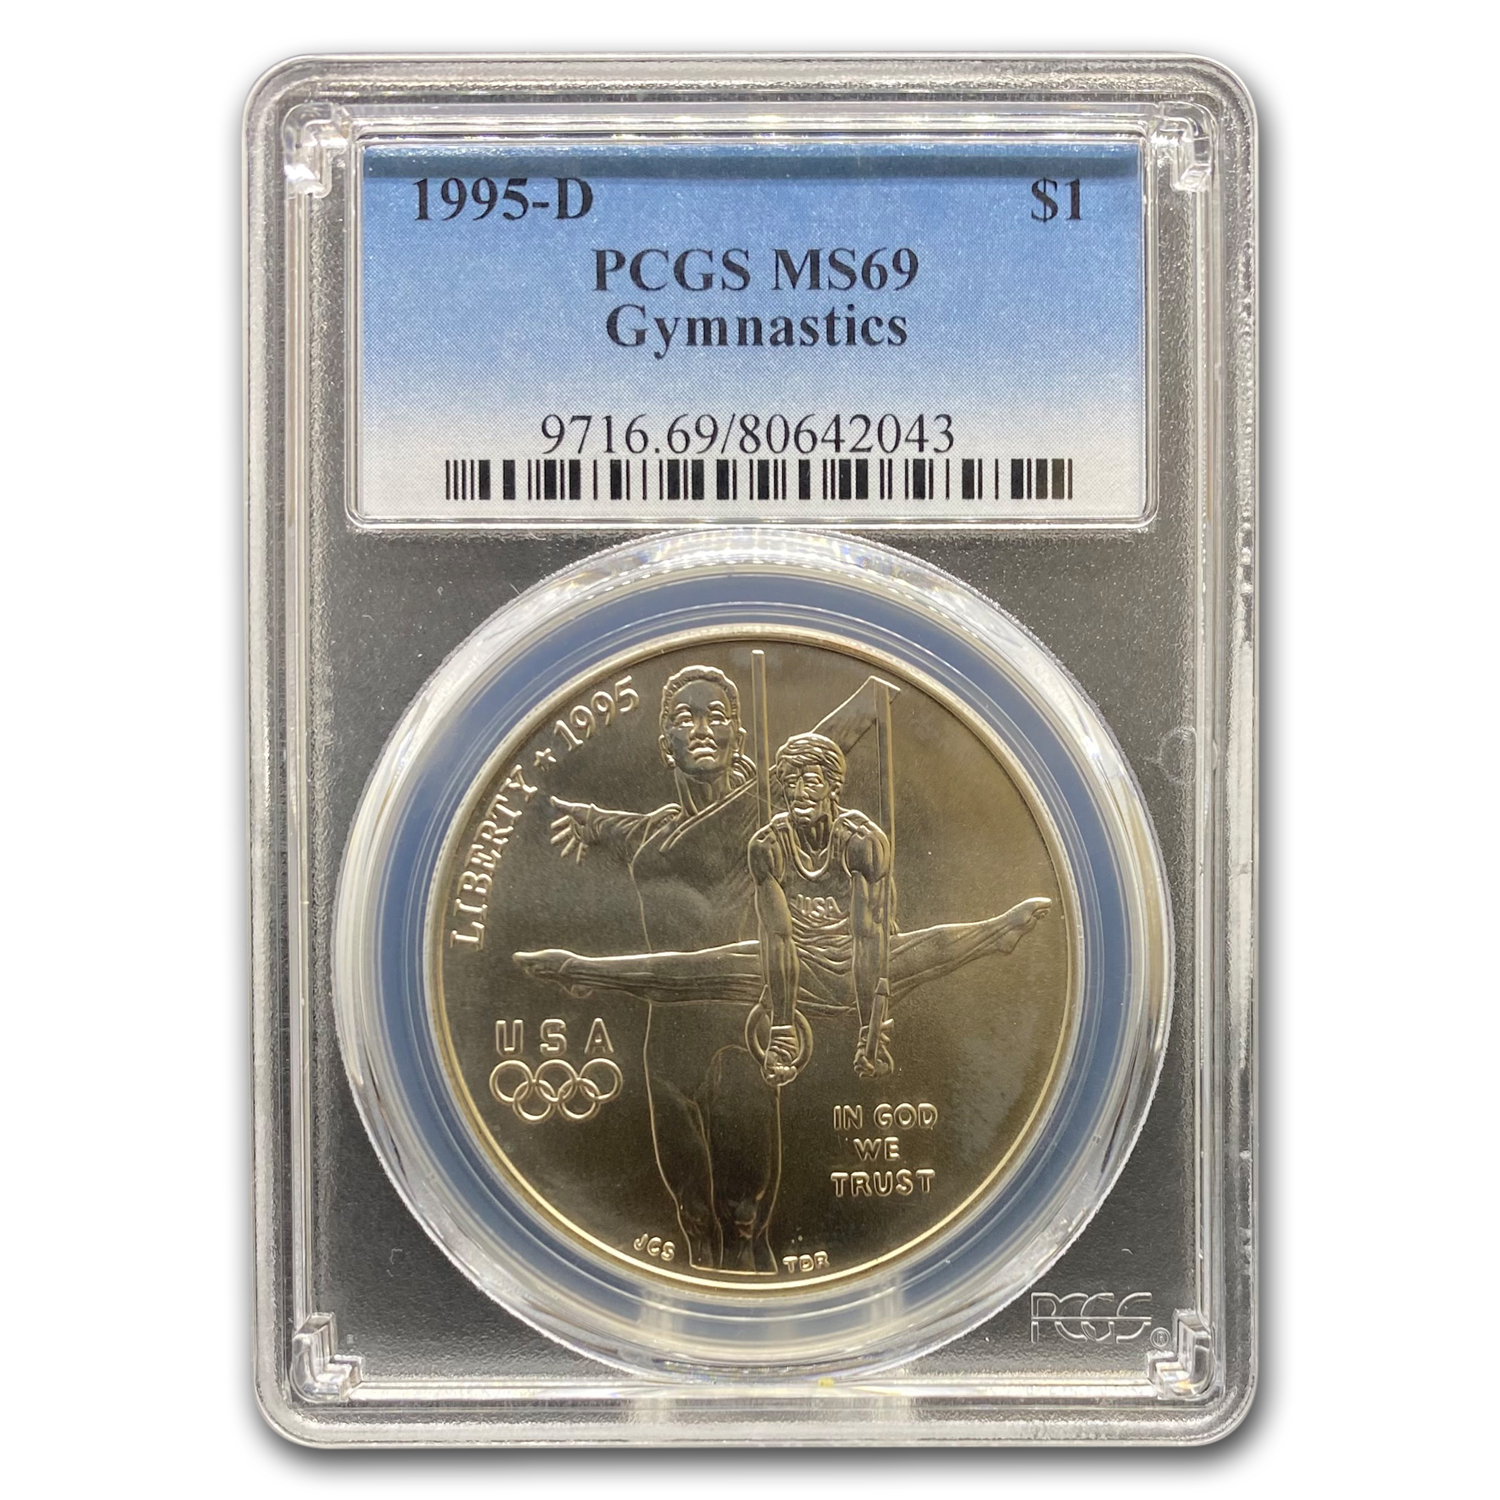 1995-D Olympic Gymnast $1 Silver Commem MS-69 PCGS